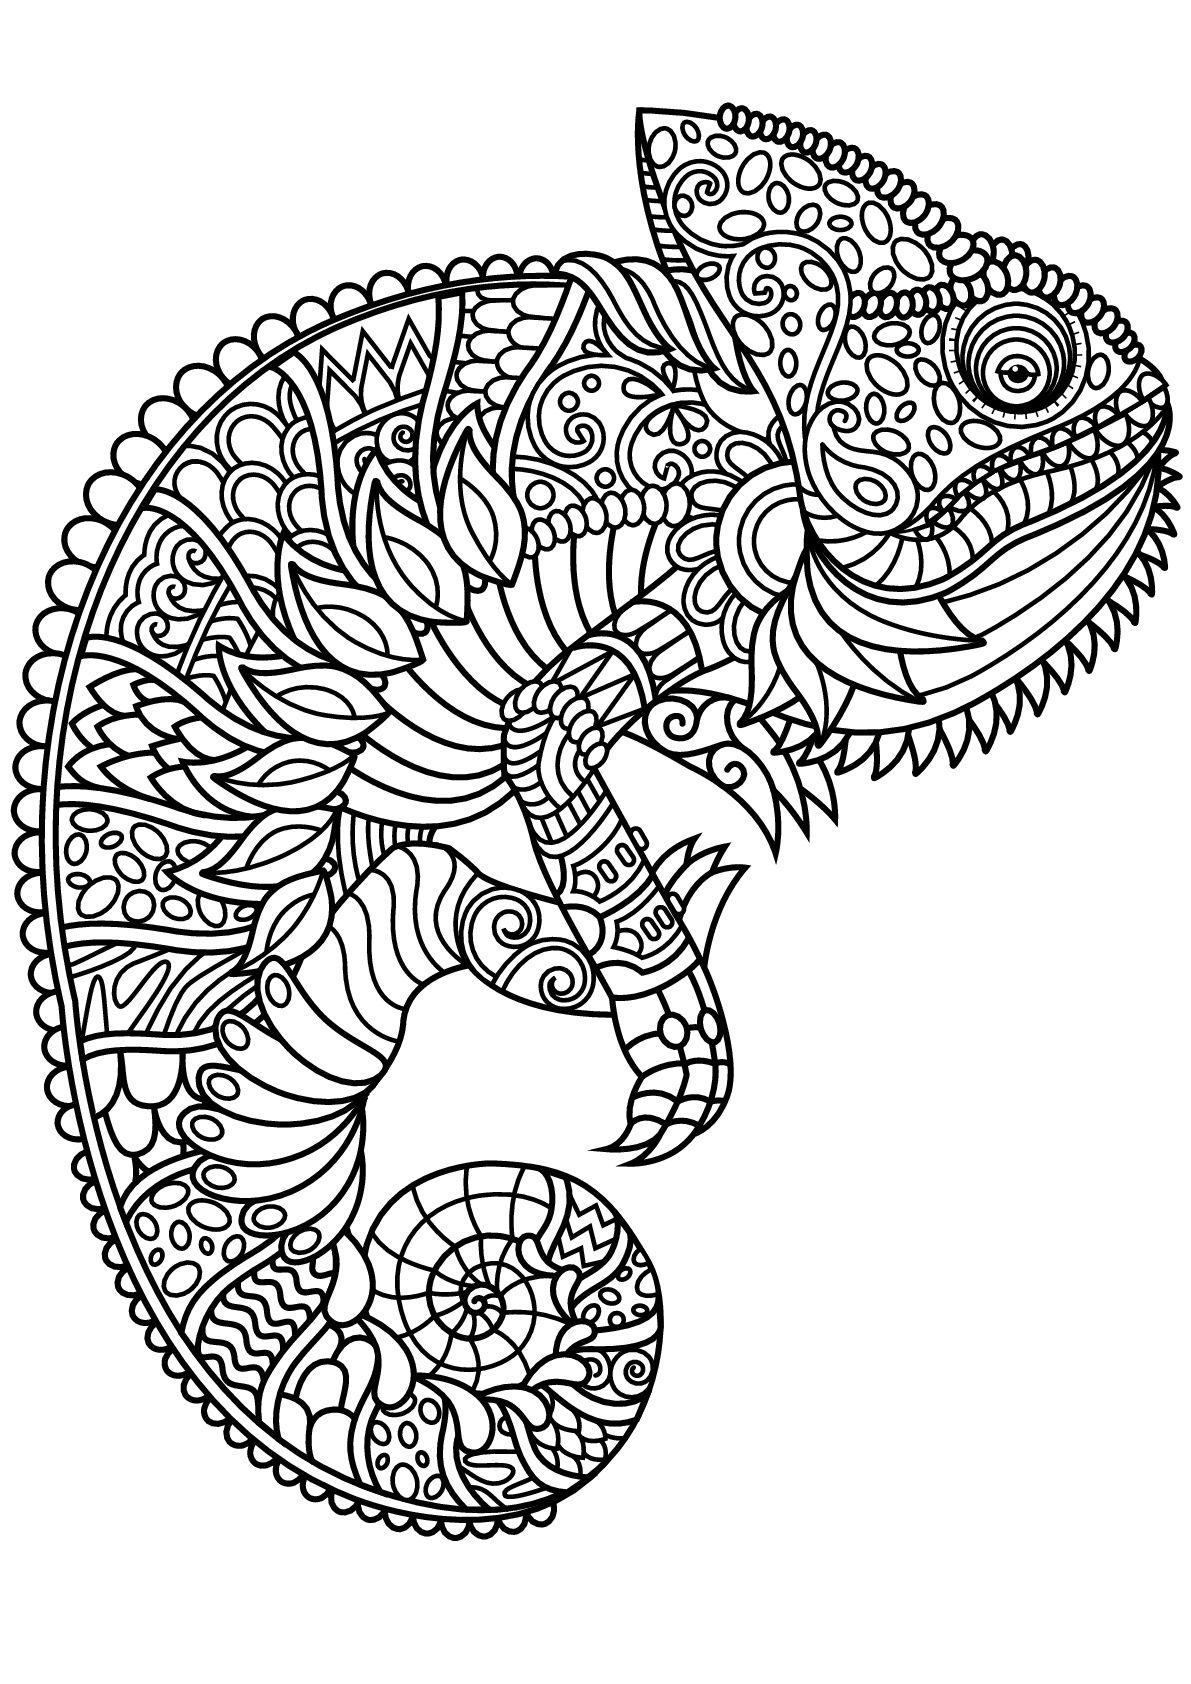 Chameleon with plex and beautiful patterns From the